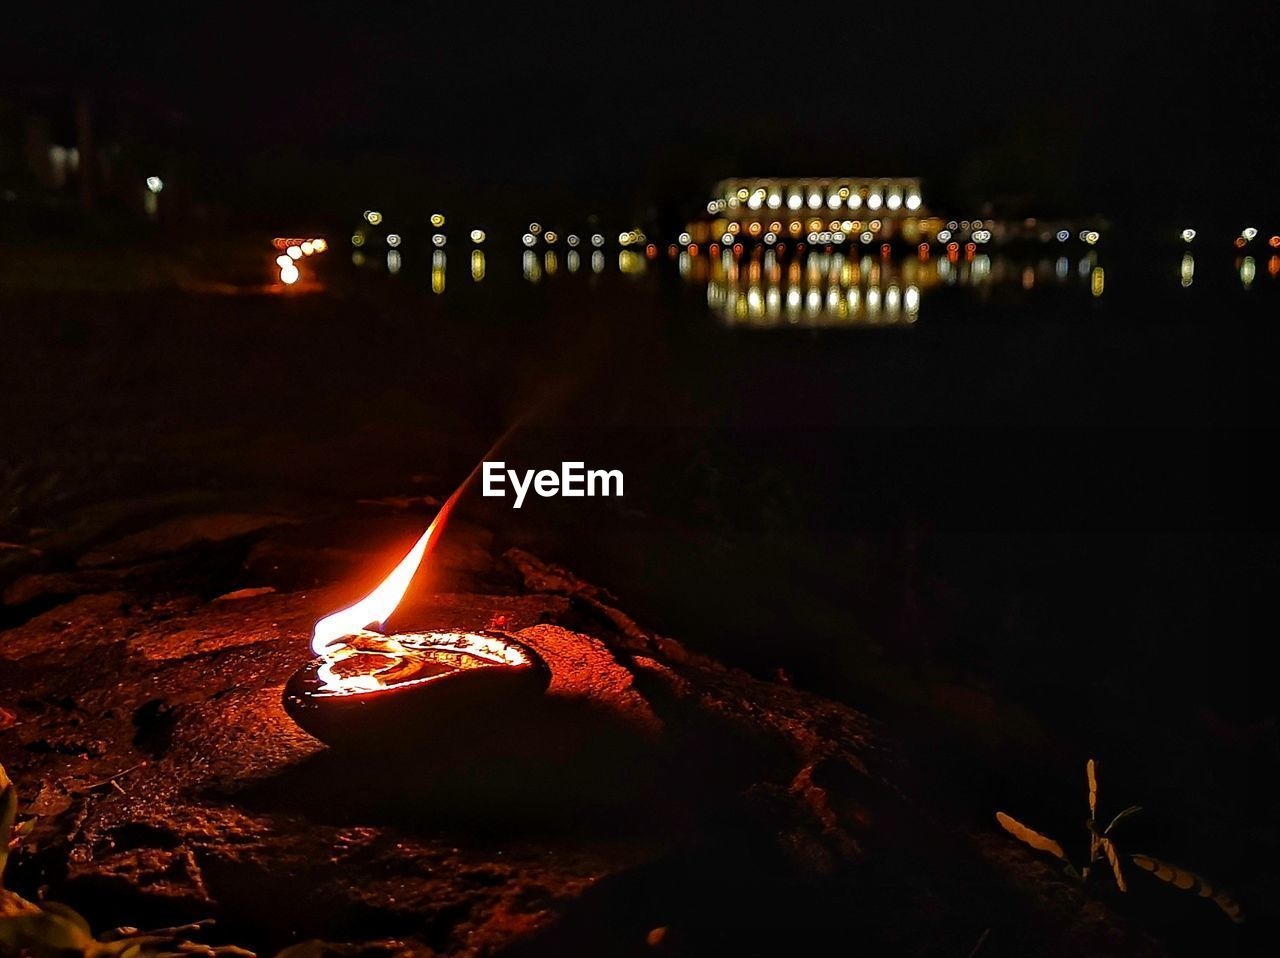 illuminated, night, flame, burning, fire, glowing, lighting equipment, nature, heat - temperature, no people, fire - natural phenomenon, focus on foreground, water, light - natural phenomenon, close-up, candle, oil lamp, architecture, outdoors, dark, electric lamp